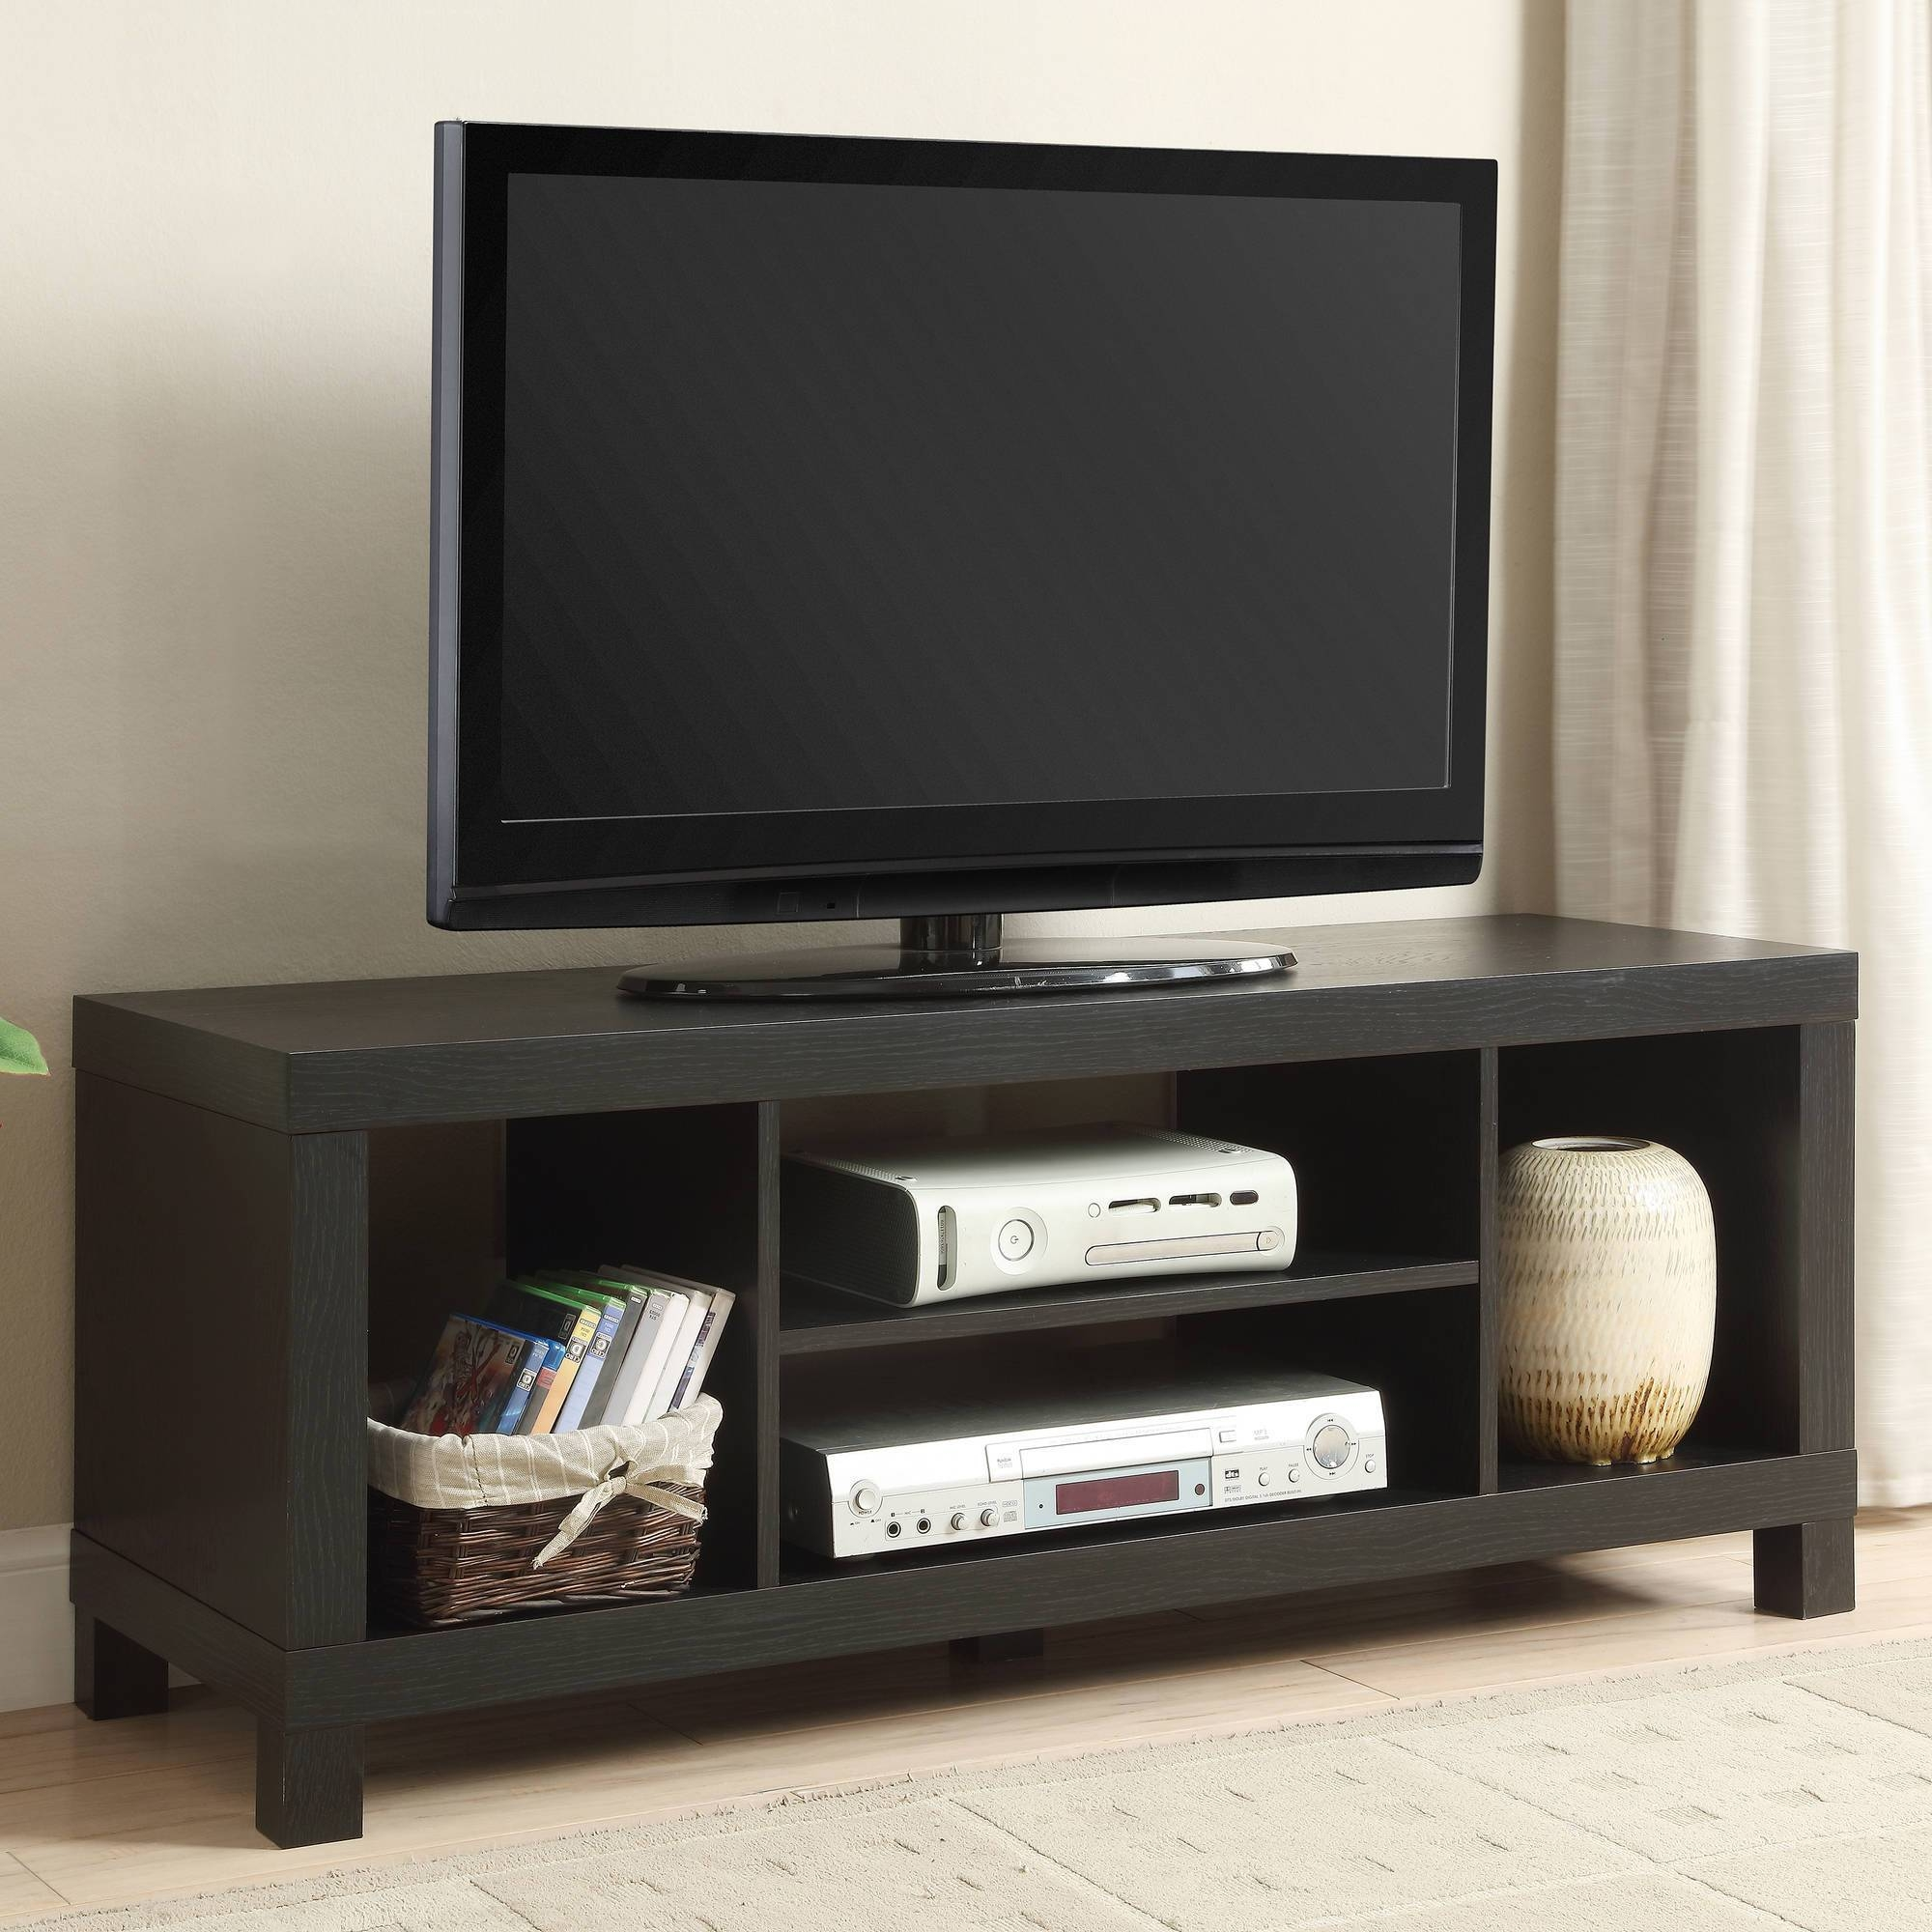 Tv Stands - Walmart throughout Upright Tv Stands (Image 13 of 15)